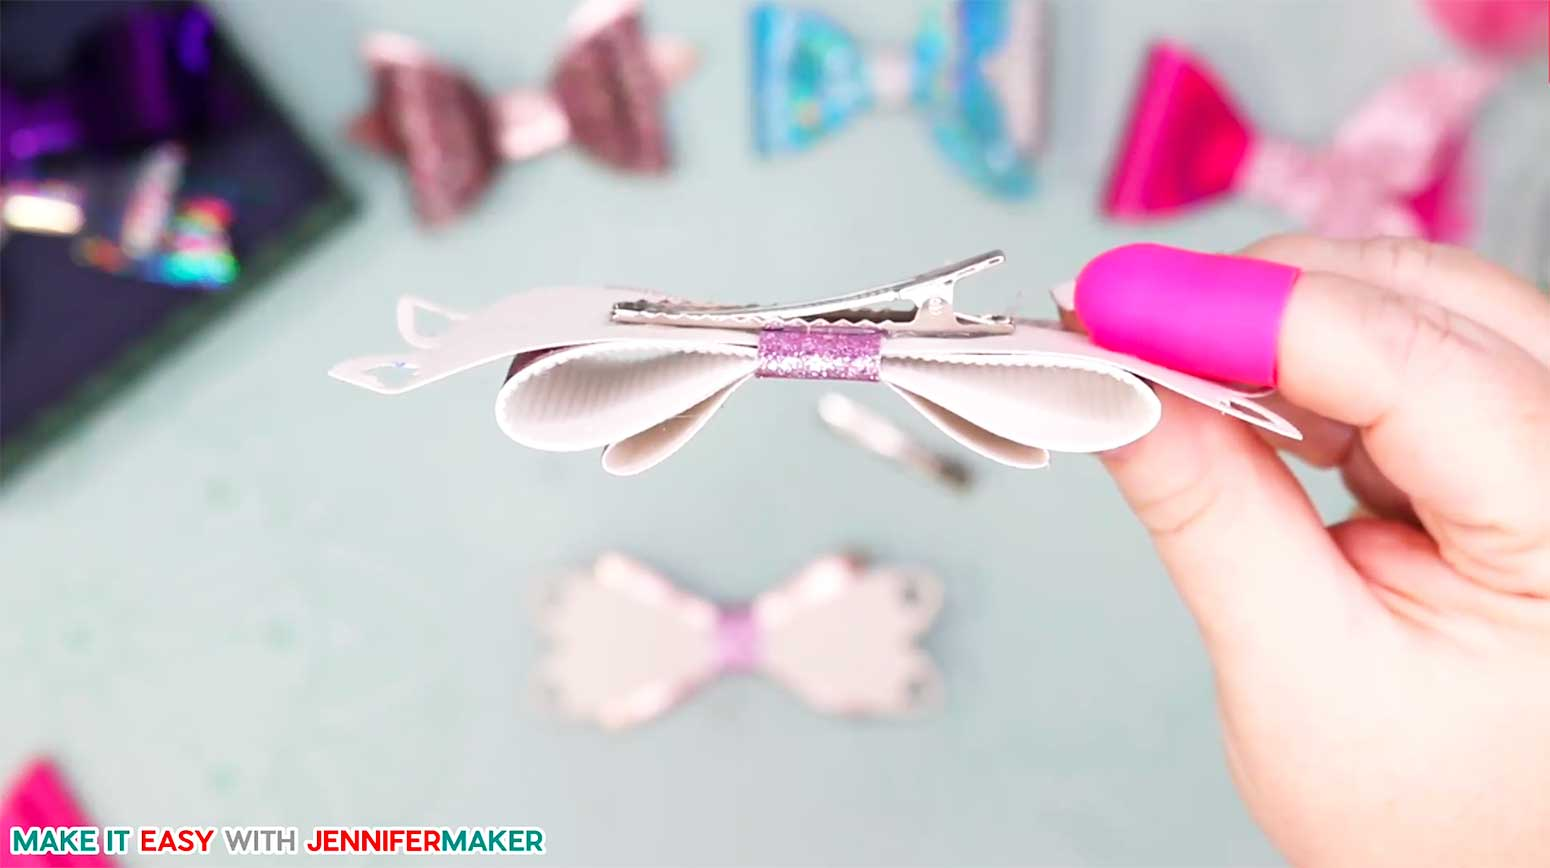 Glue a hair clip to the back of your assembled bow to make hair bows